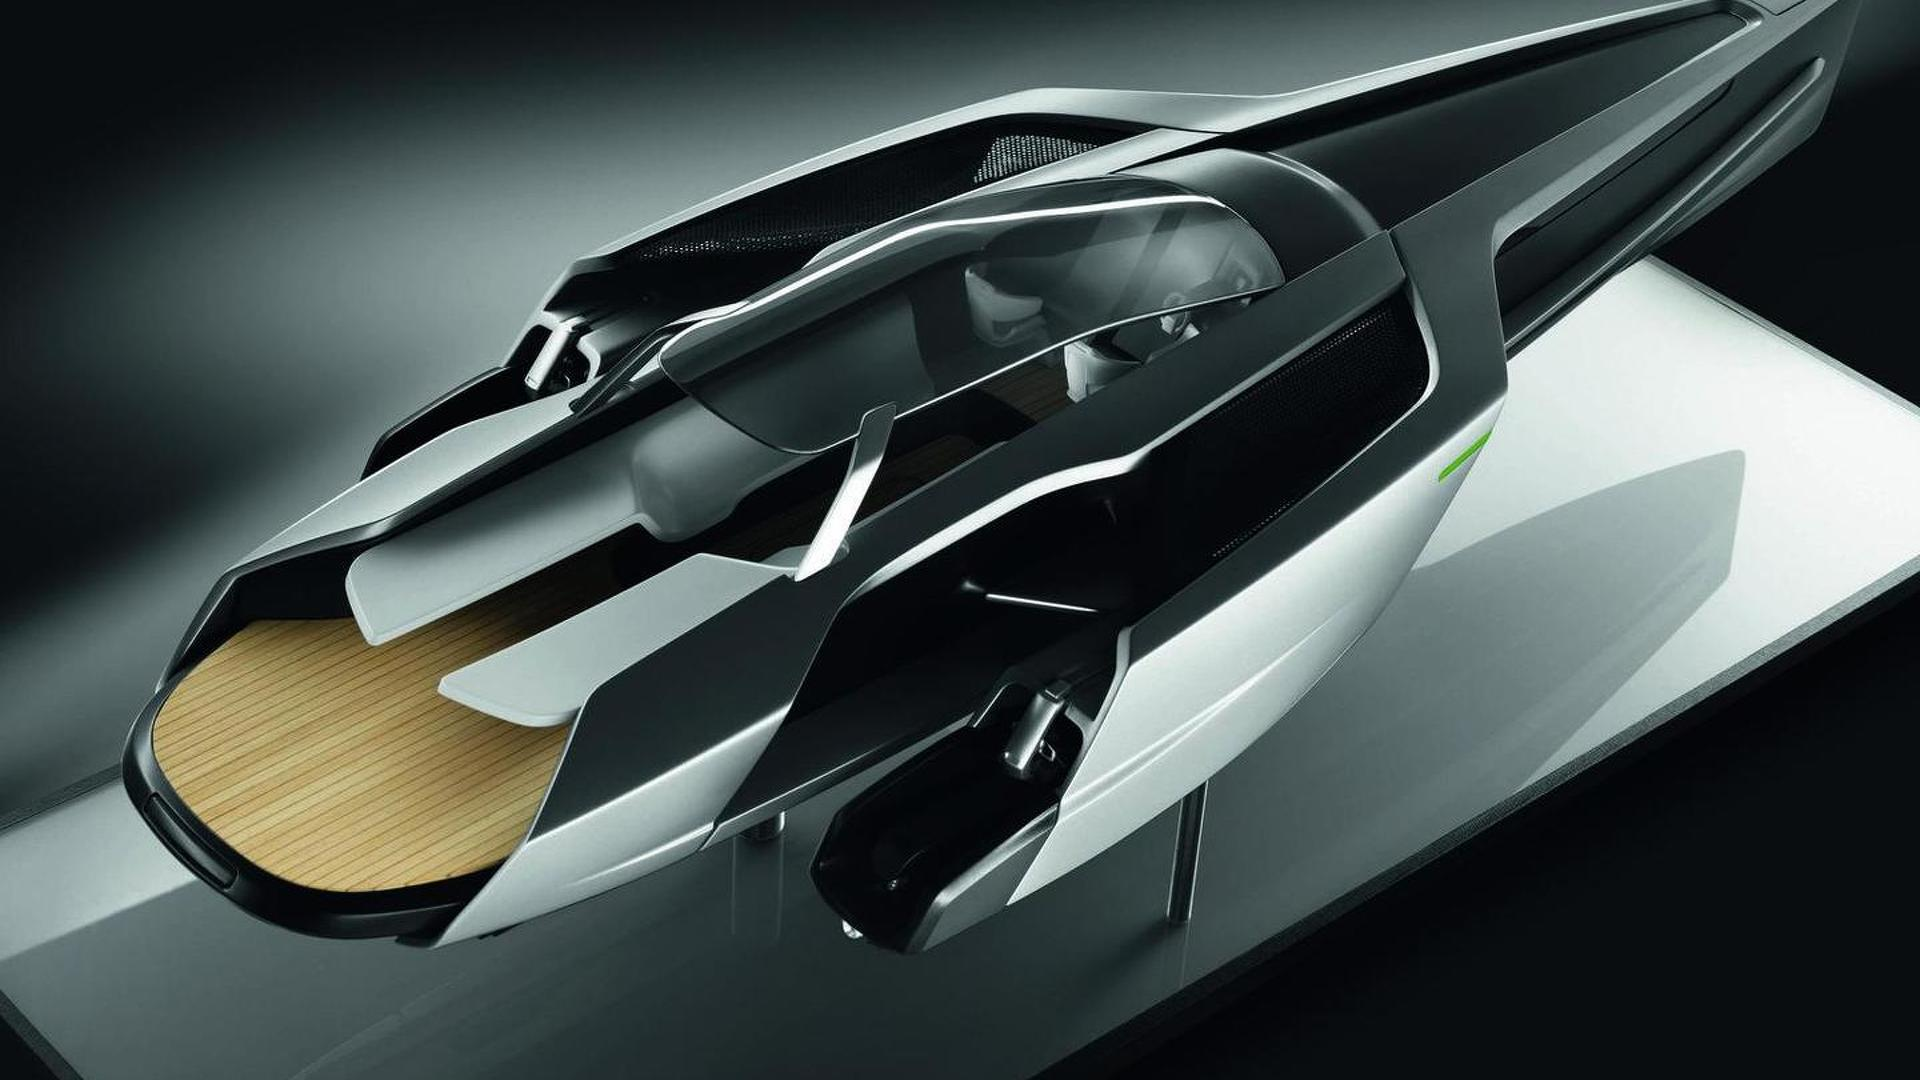 Audi Trimaran yacht envisioned by a design student